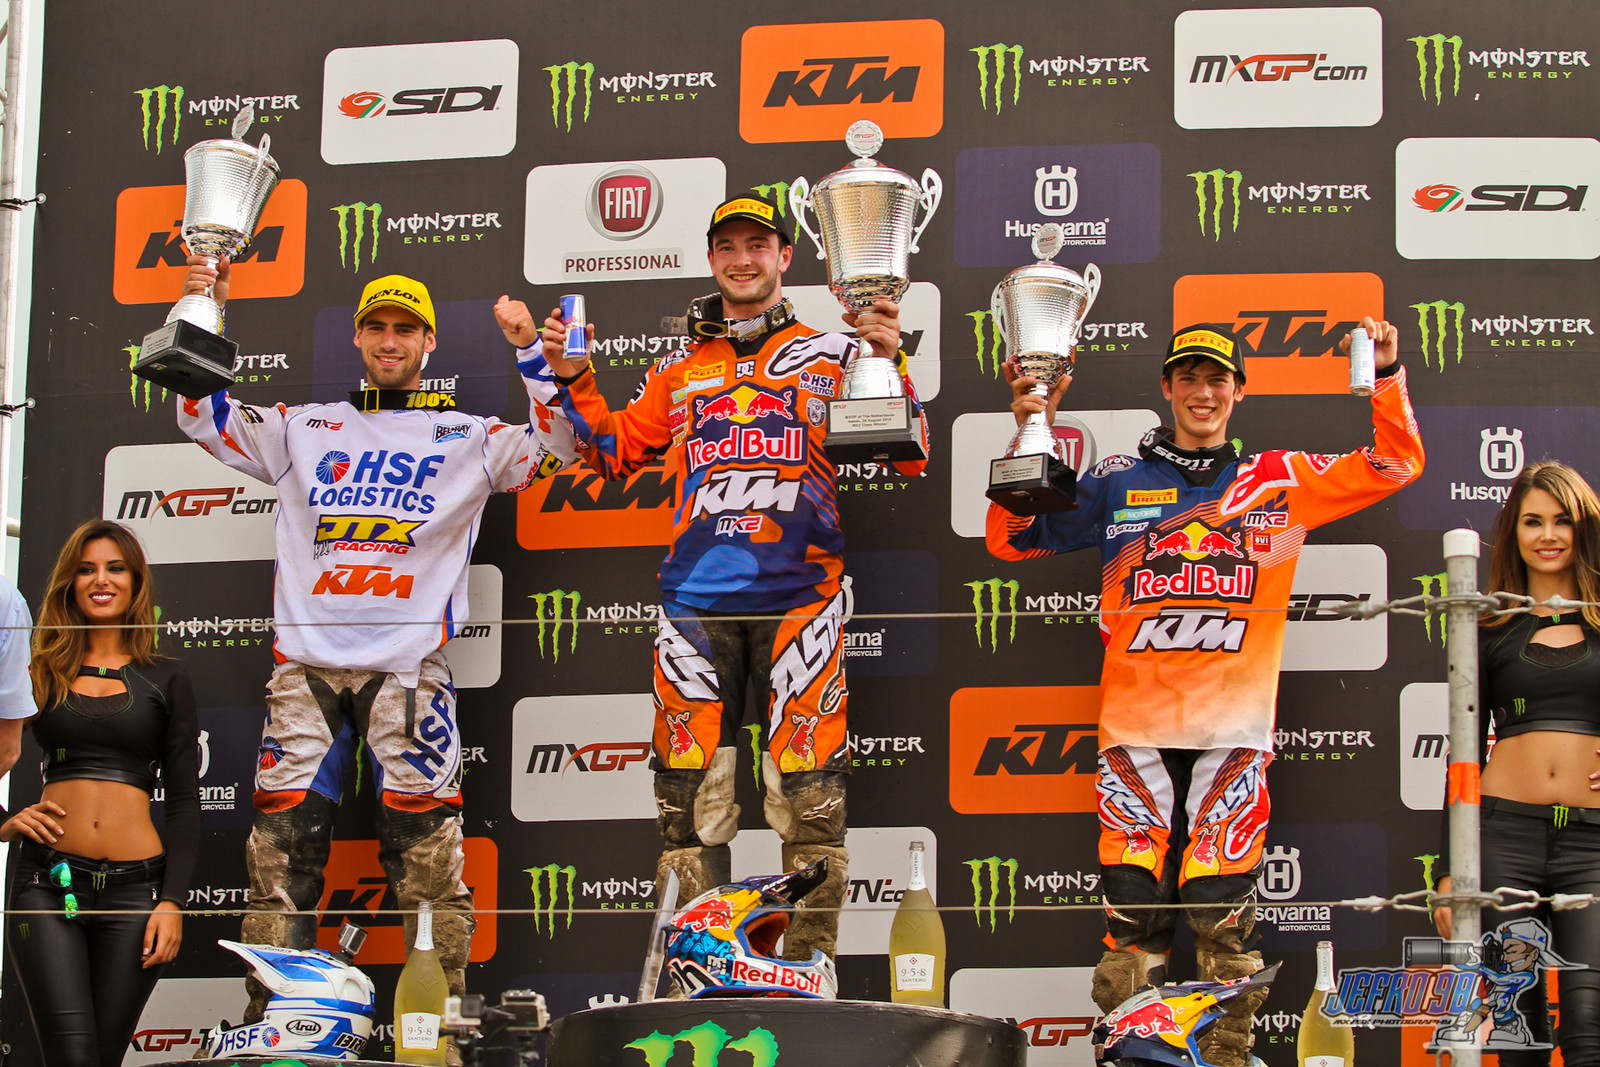 MX2 Podium - Photo Gallery: MXGP of the Netherlands - Motocross Pictures - Vital MX